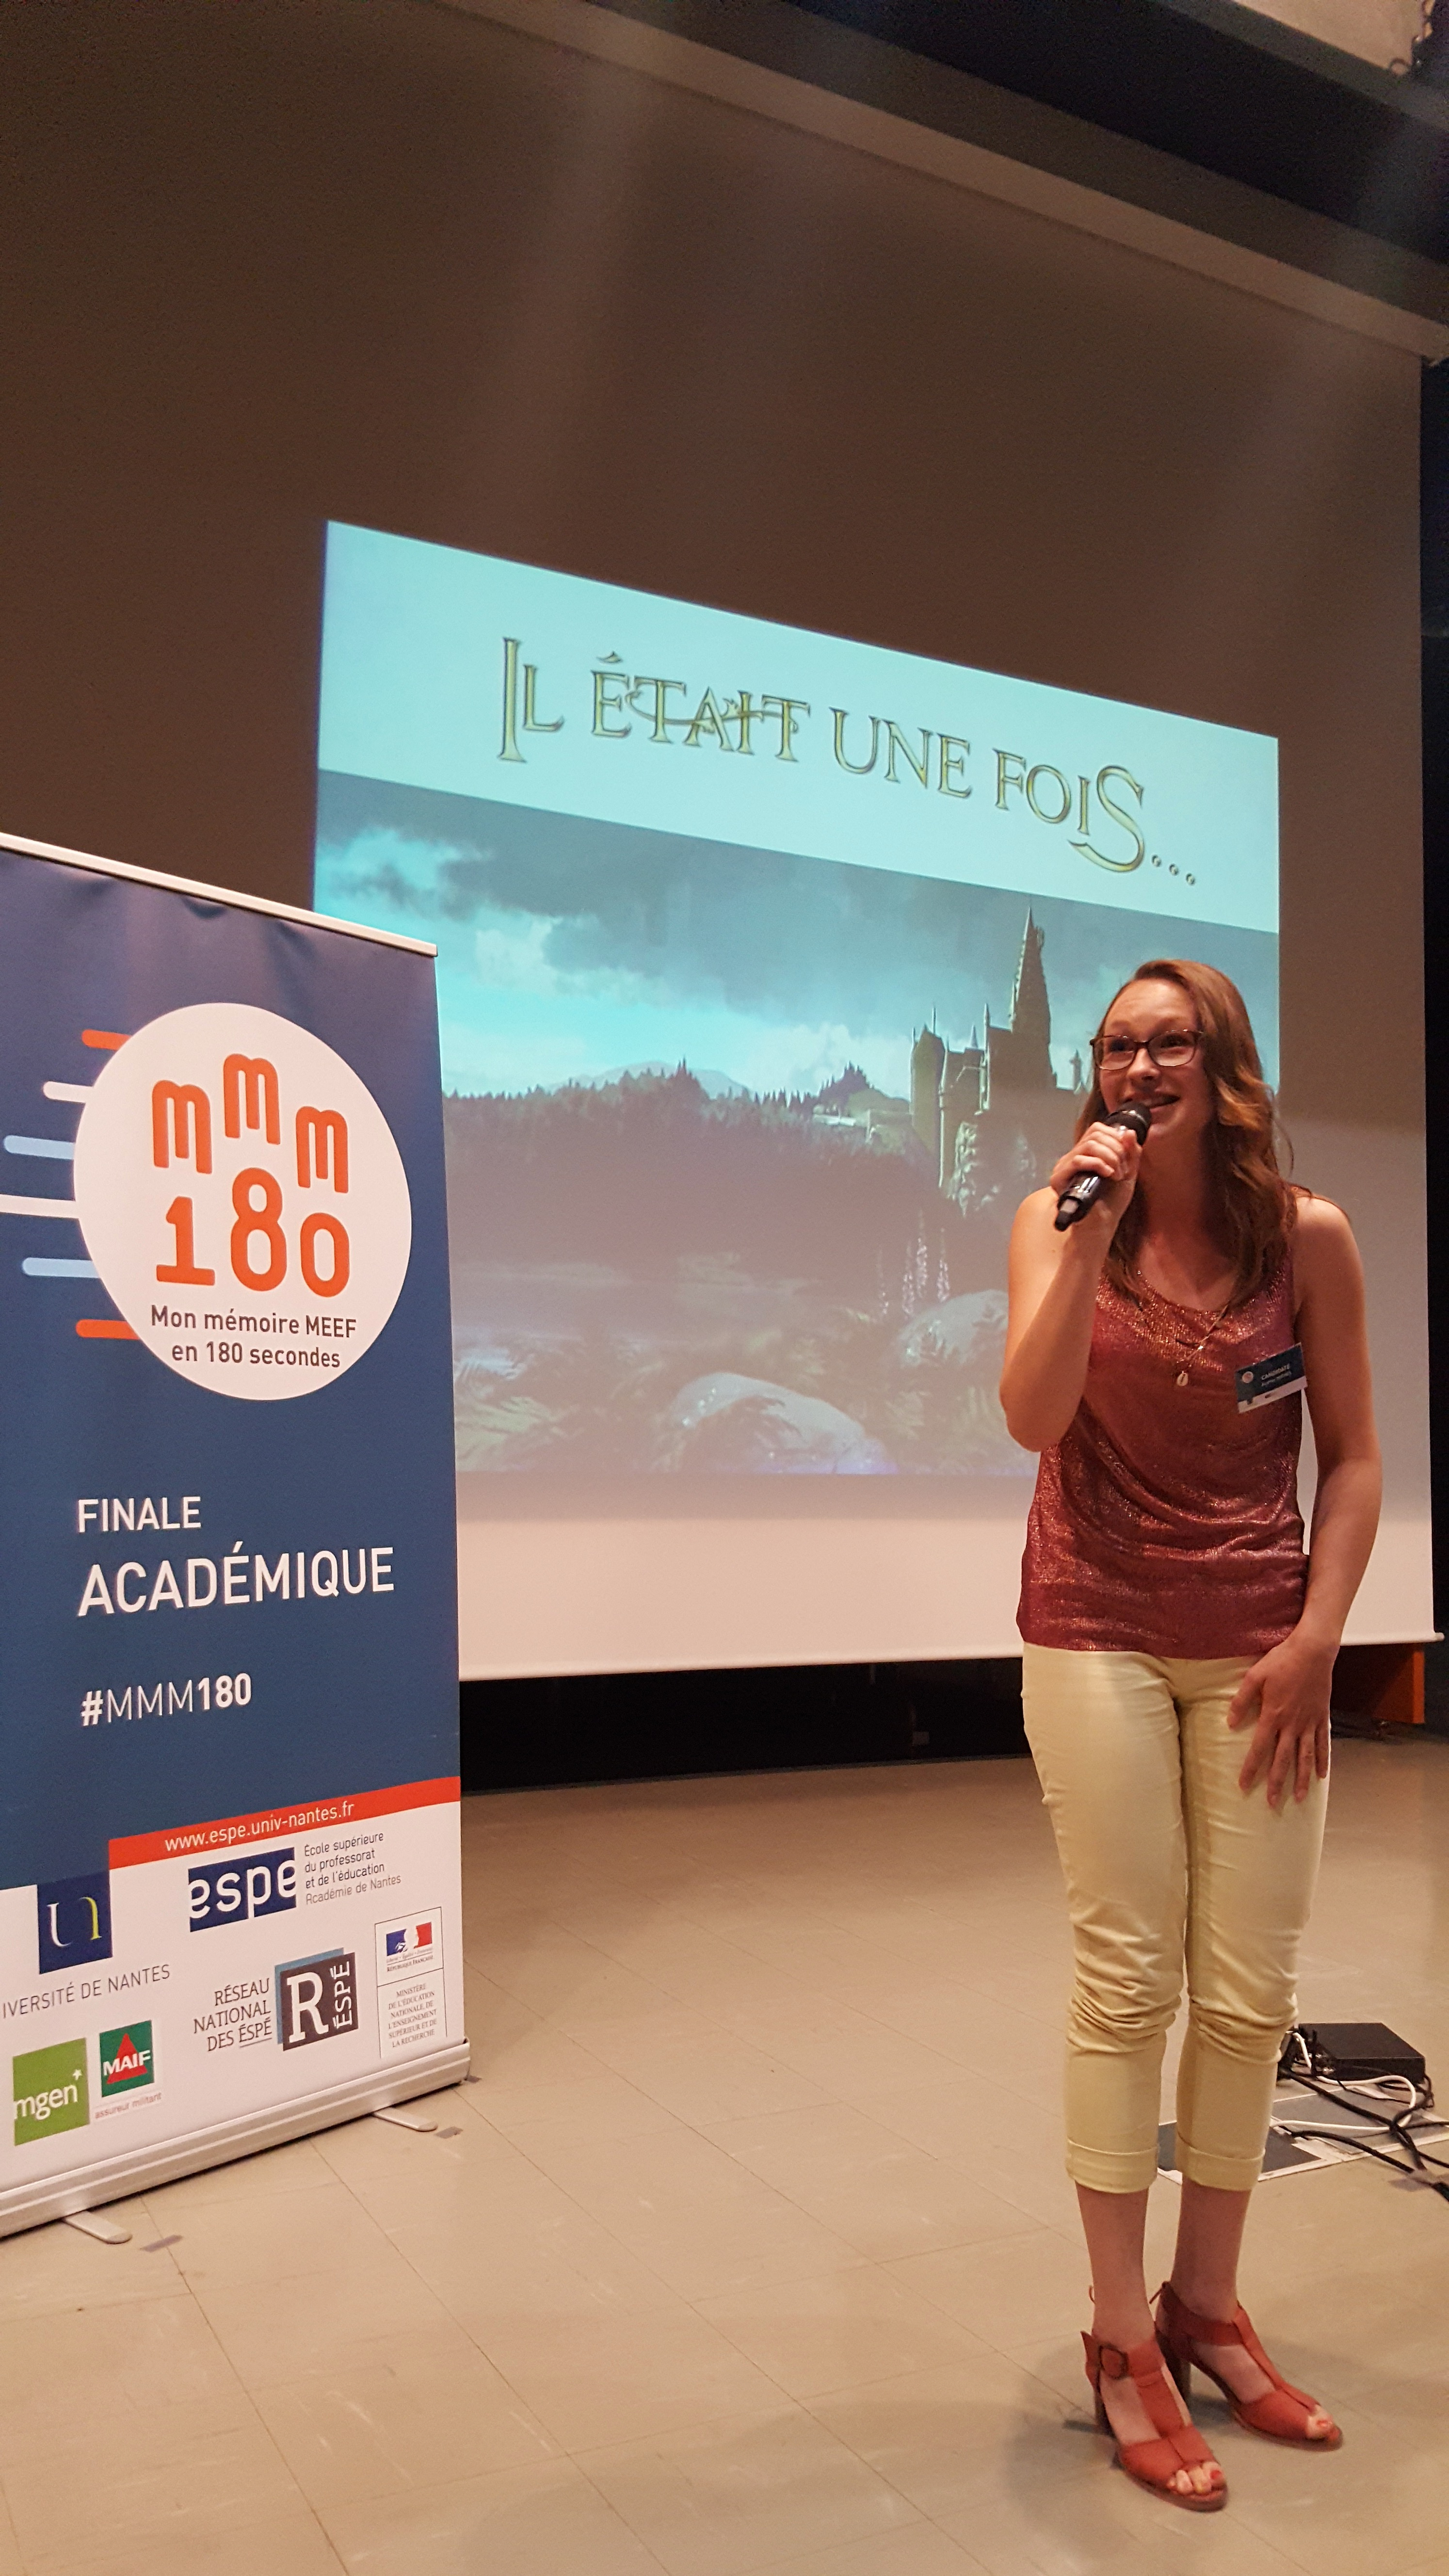 MMM180 : Venez encourager les candidats !